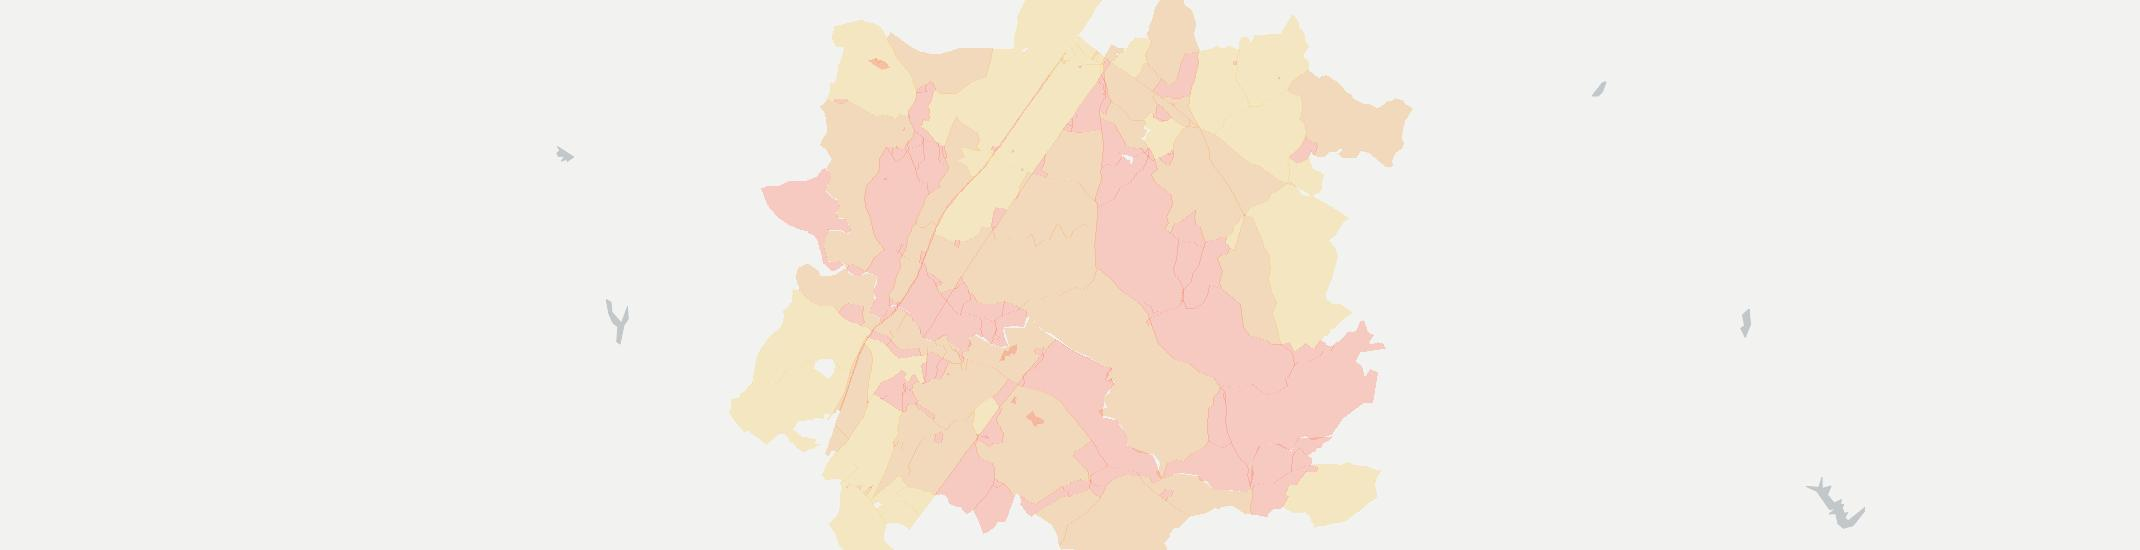 Rochelle Internet Competition Map. Click for interactive map.